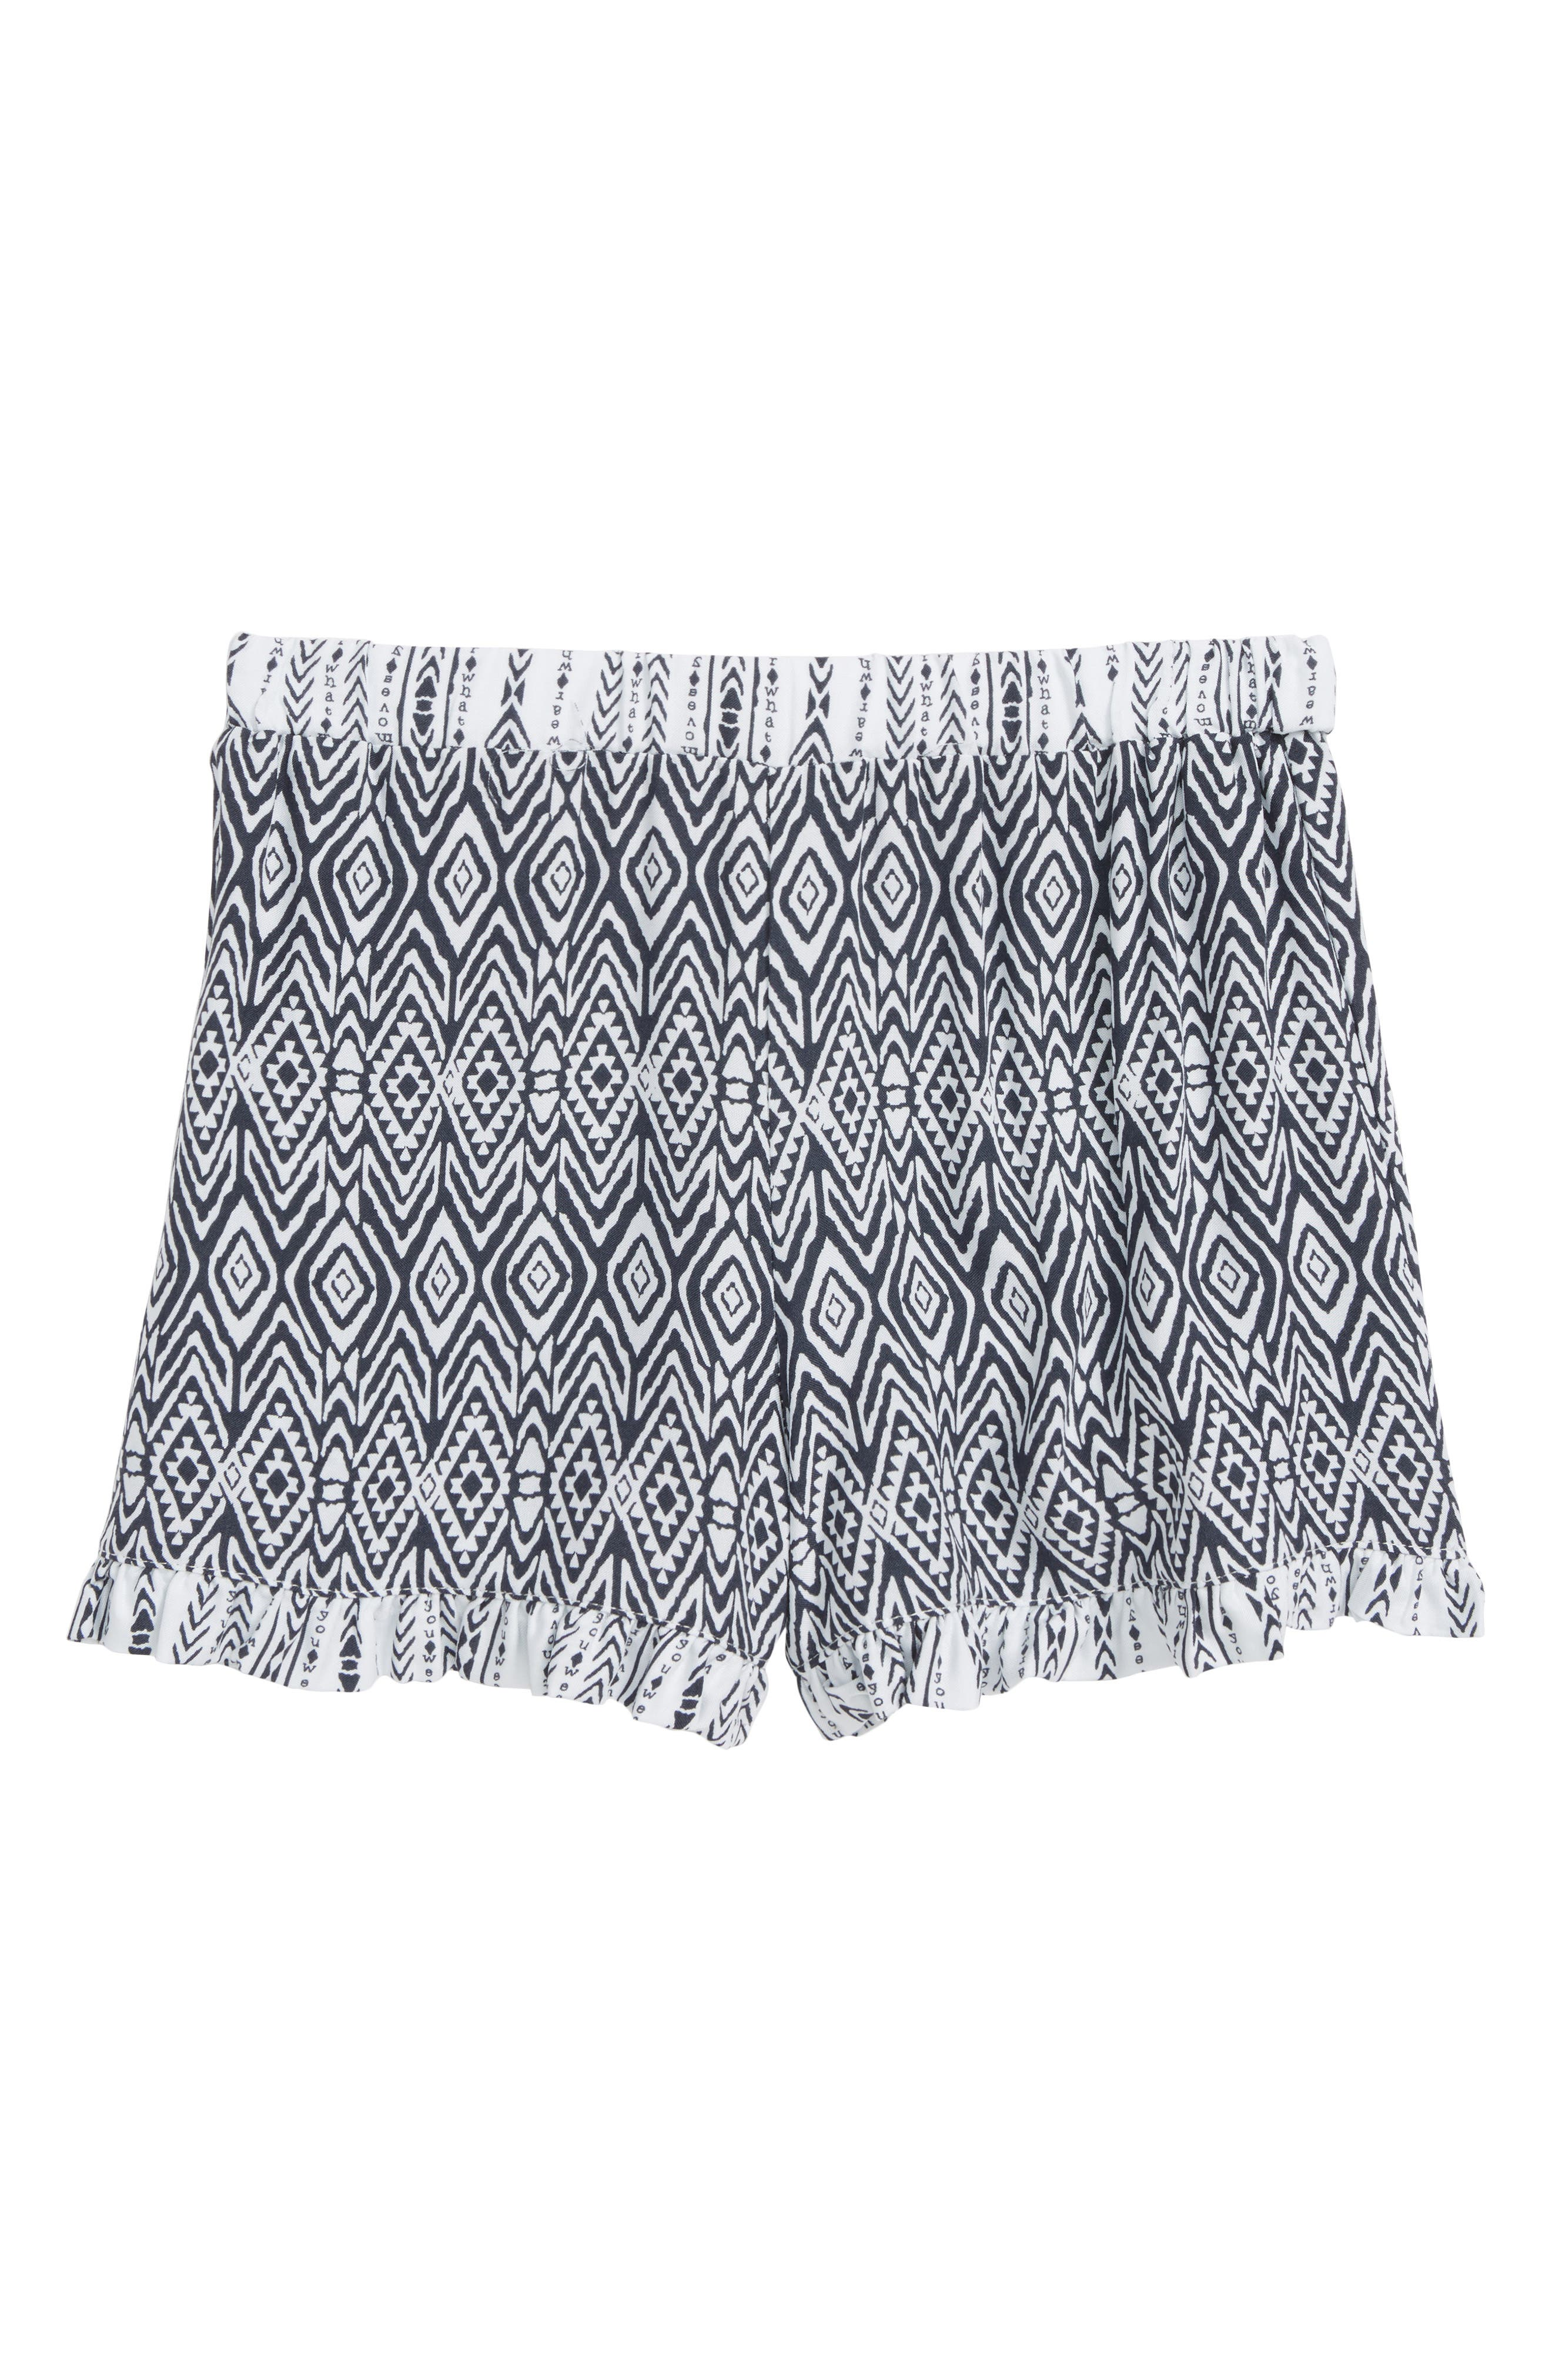 Tribal Print Shorts,                             Main thumbnail 1, color,                             Navy/ White